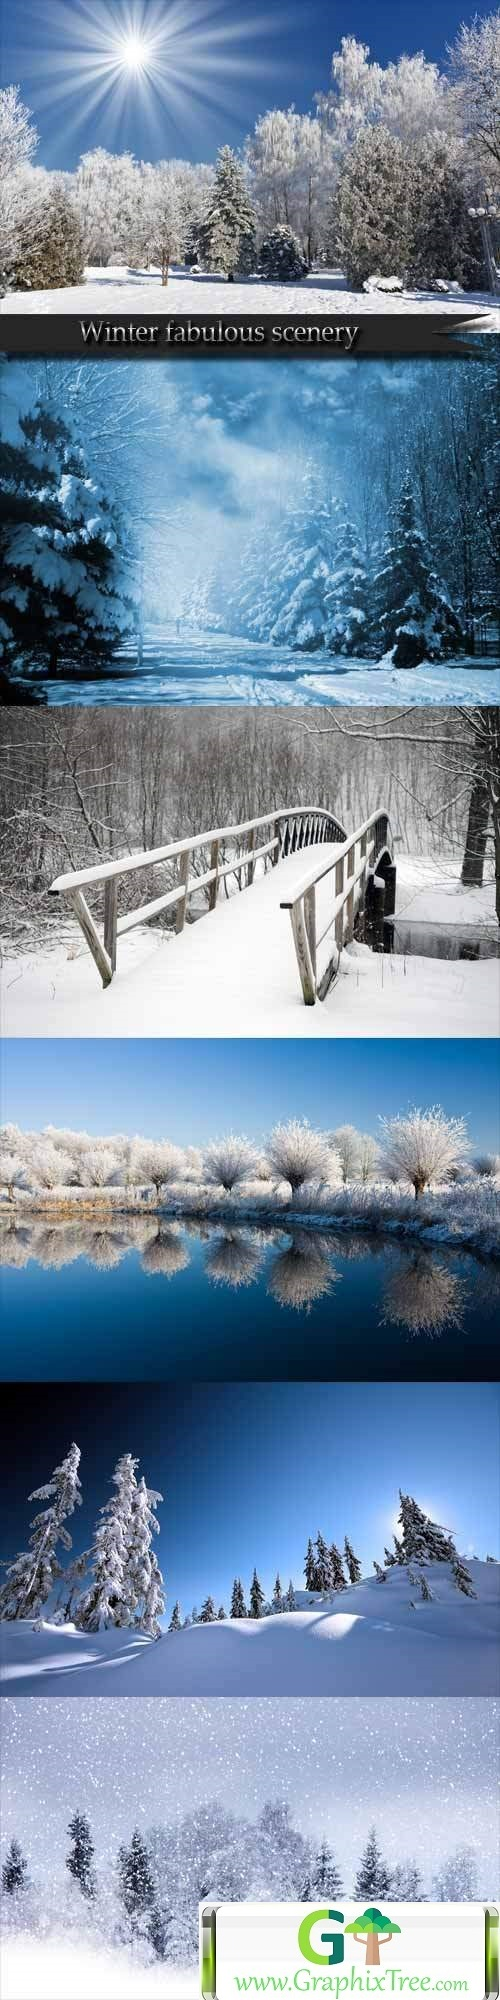 Winter fabulous scenery